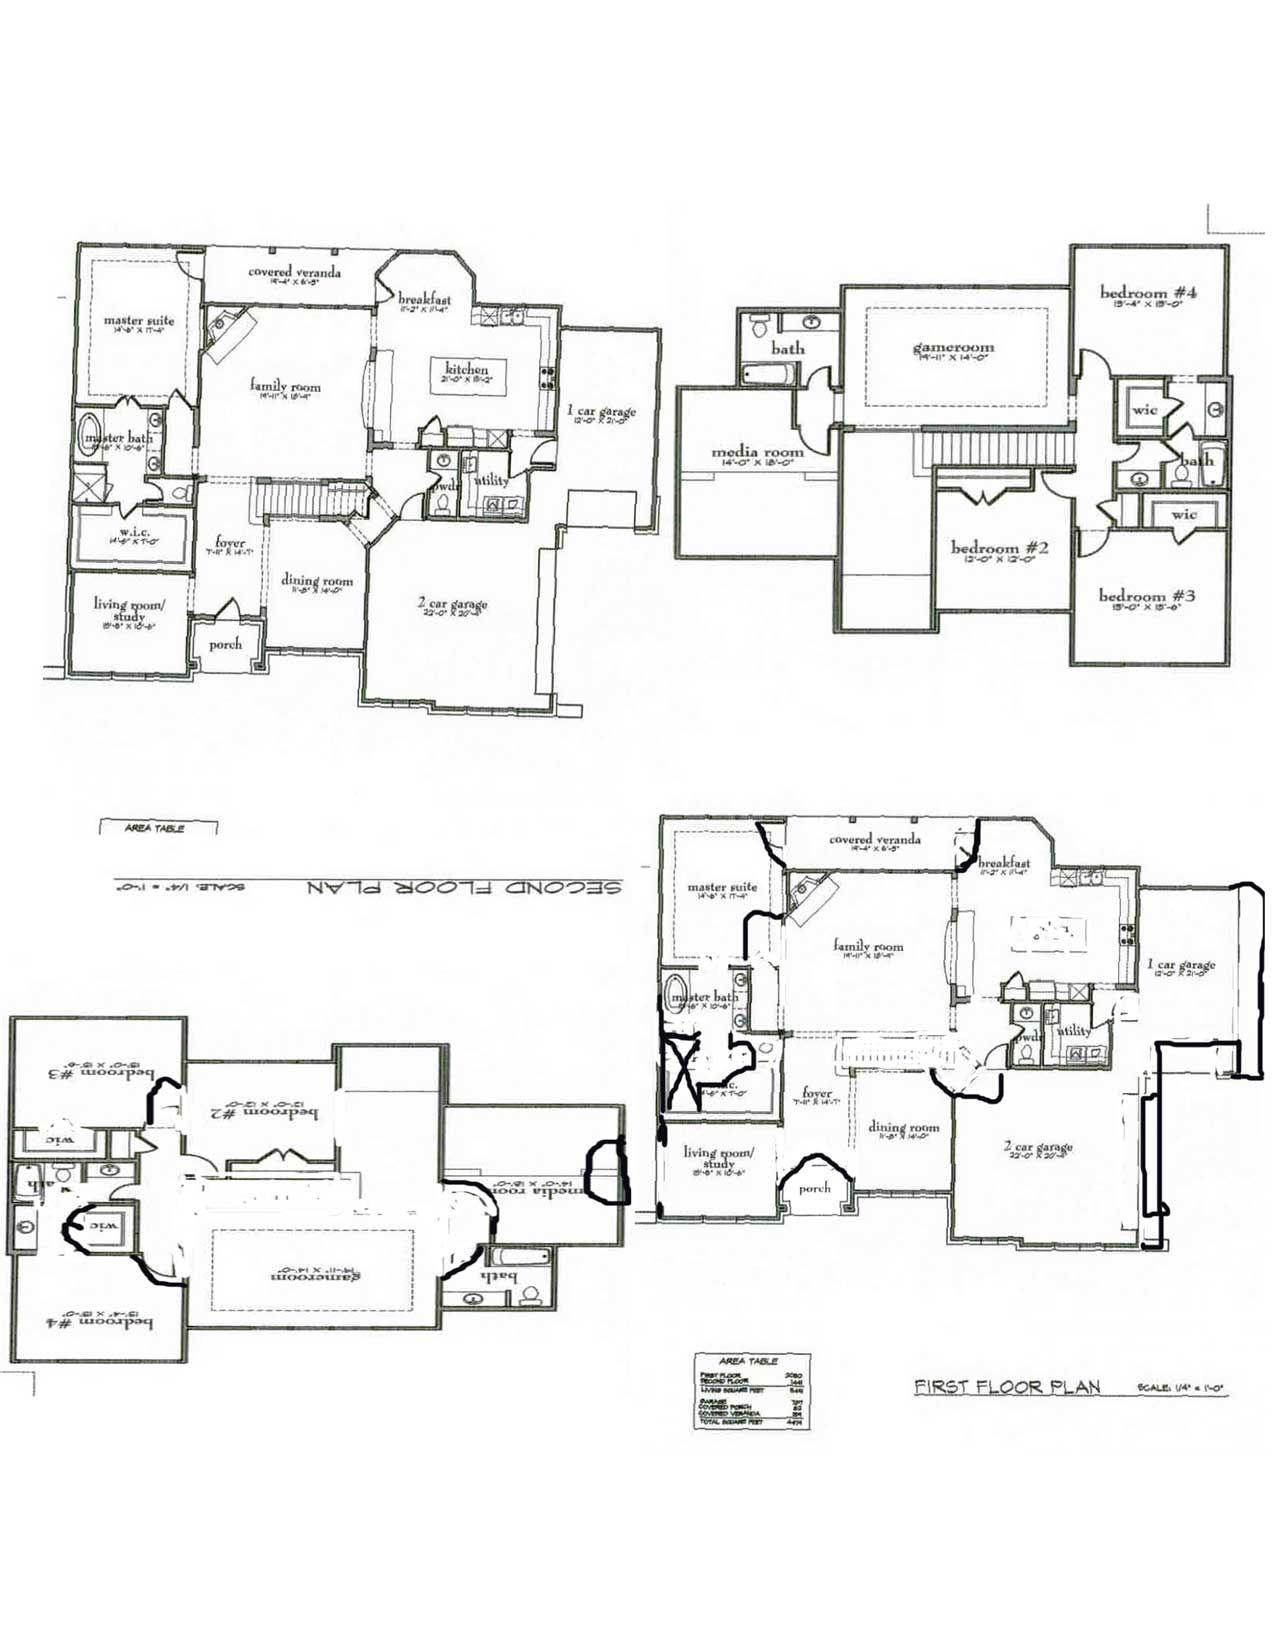 Fs4233 Design For Special Needs I Redesigned A House Floor Plan To Accommodate A Wheelcha Accessible House Plans Mother In Law Apartment House Floor Plans